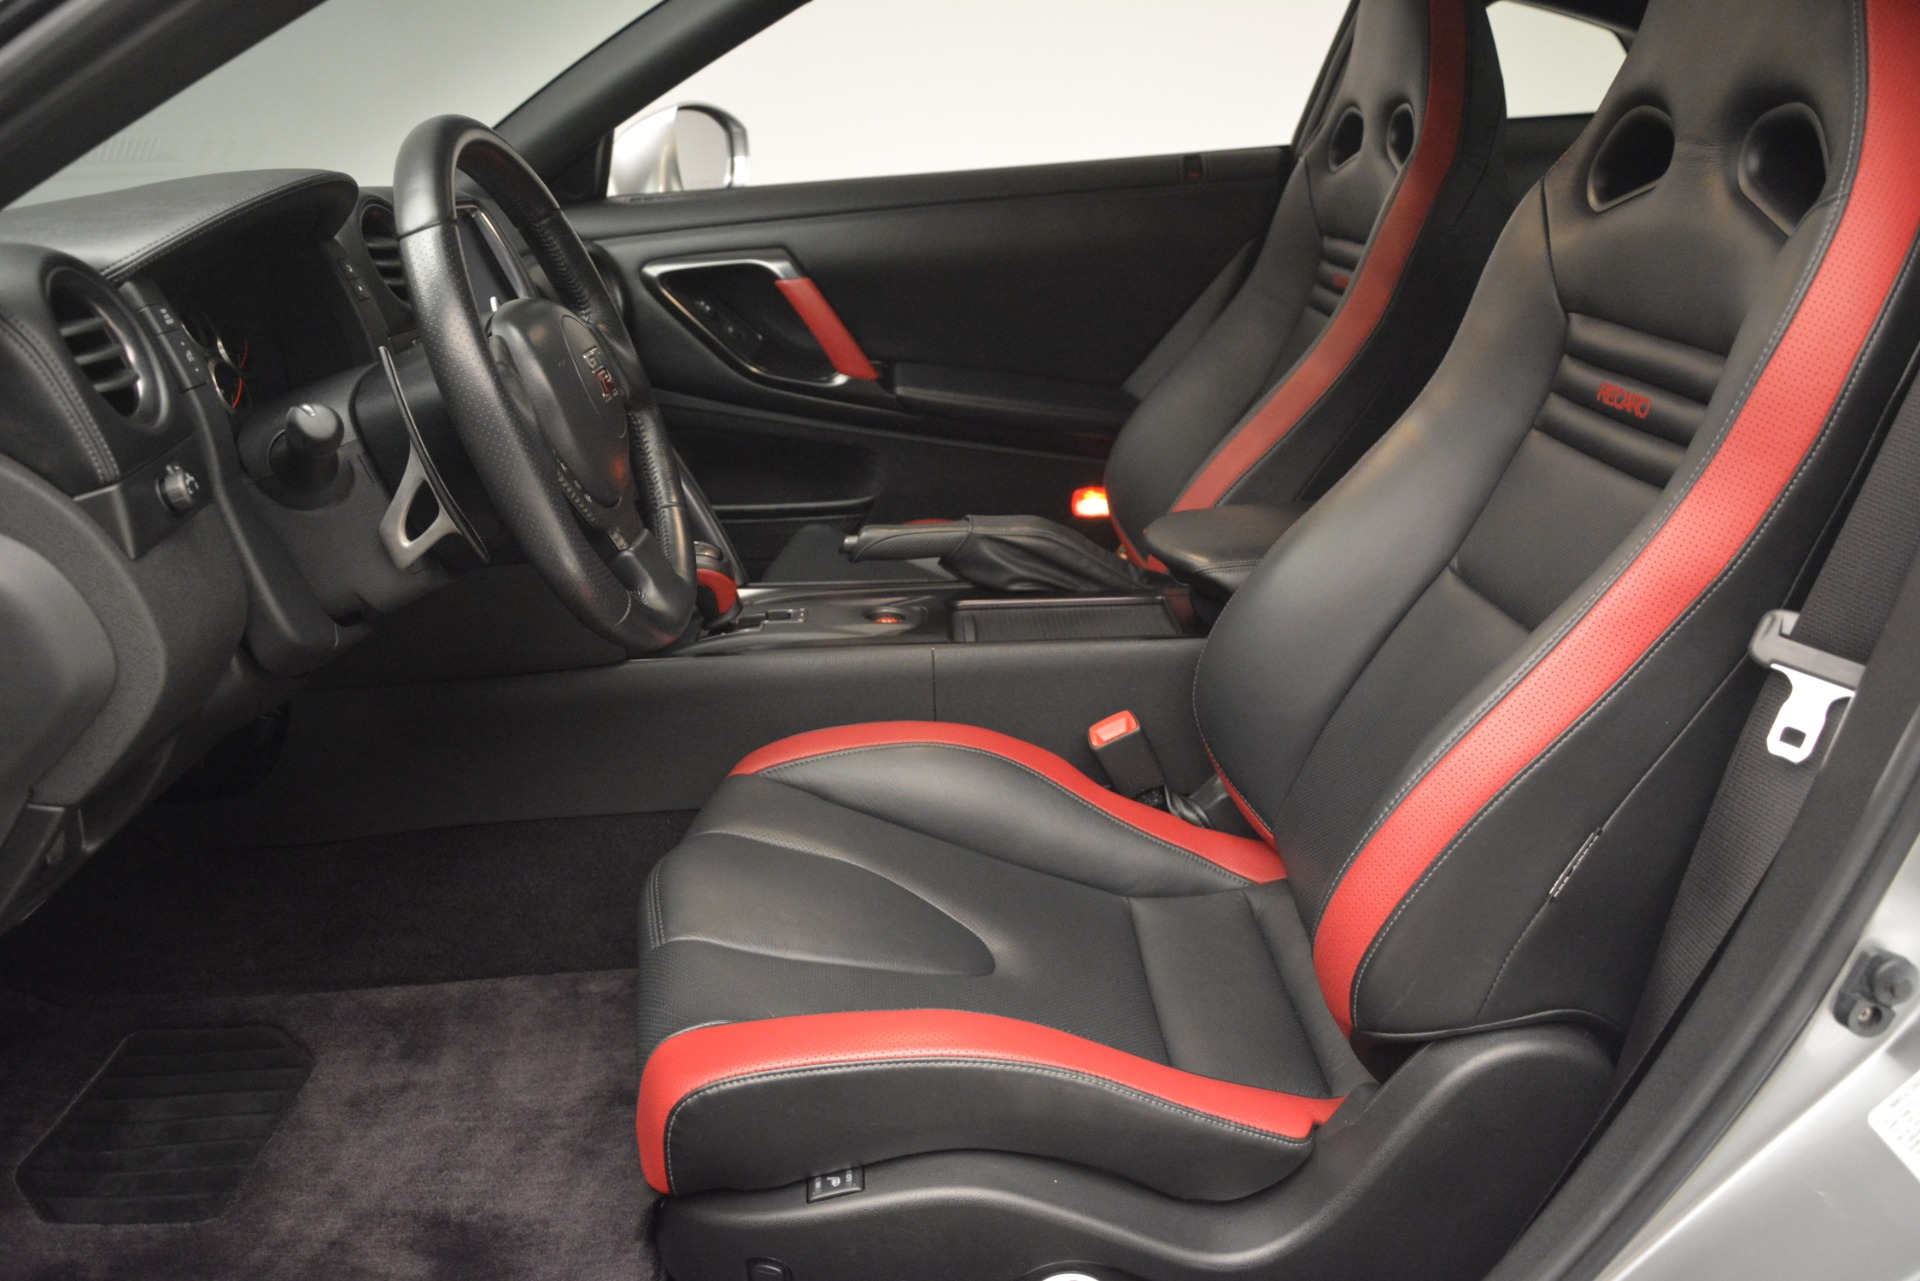 Used 2013 Nissan GT-R Black Edition For Sale In Greenwich, CT 3028_p16